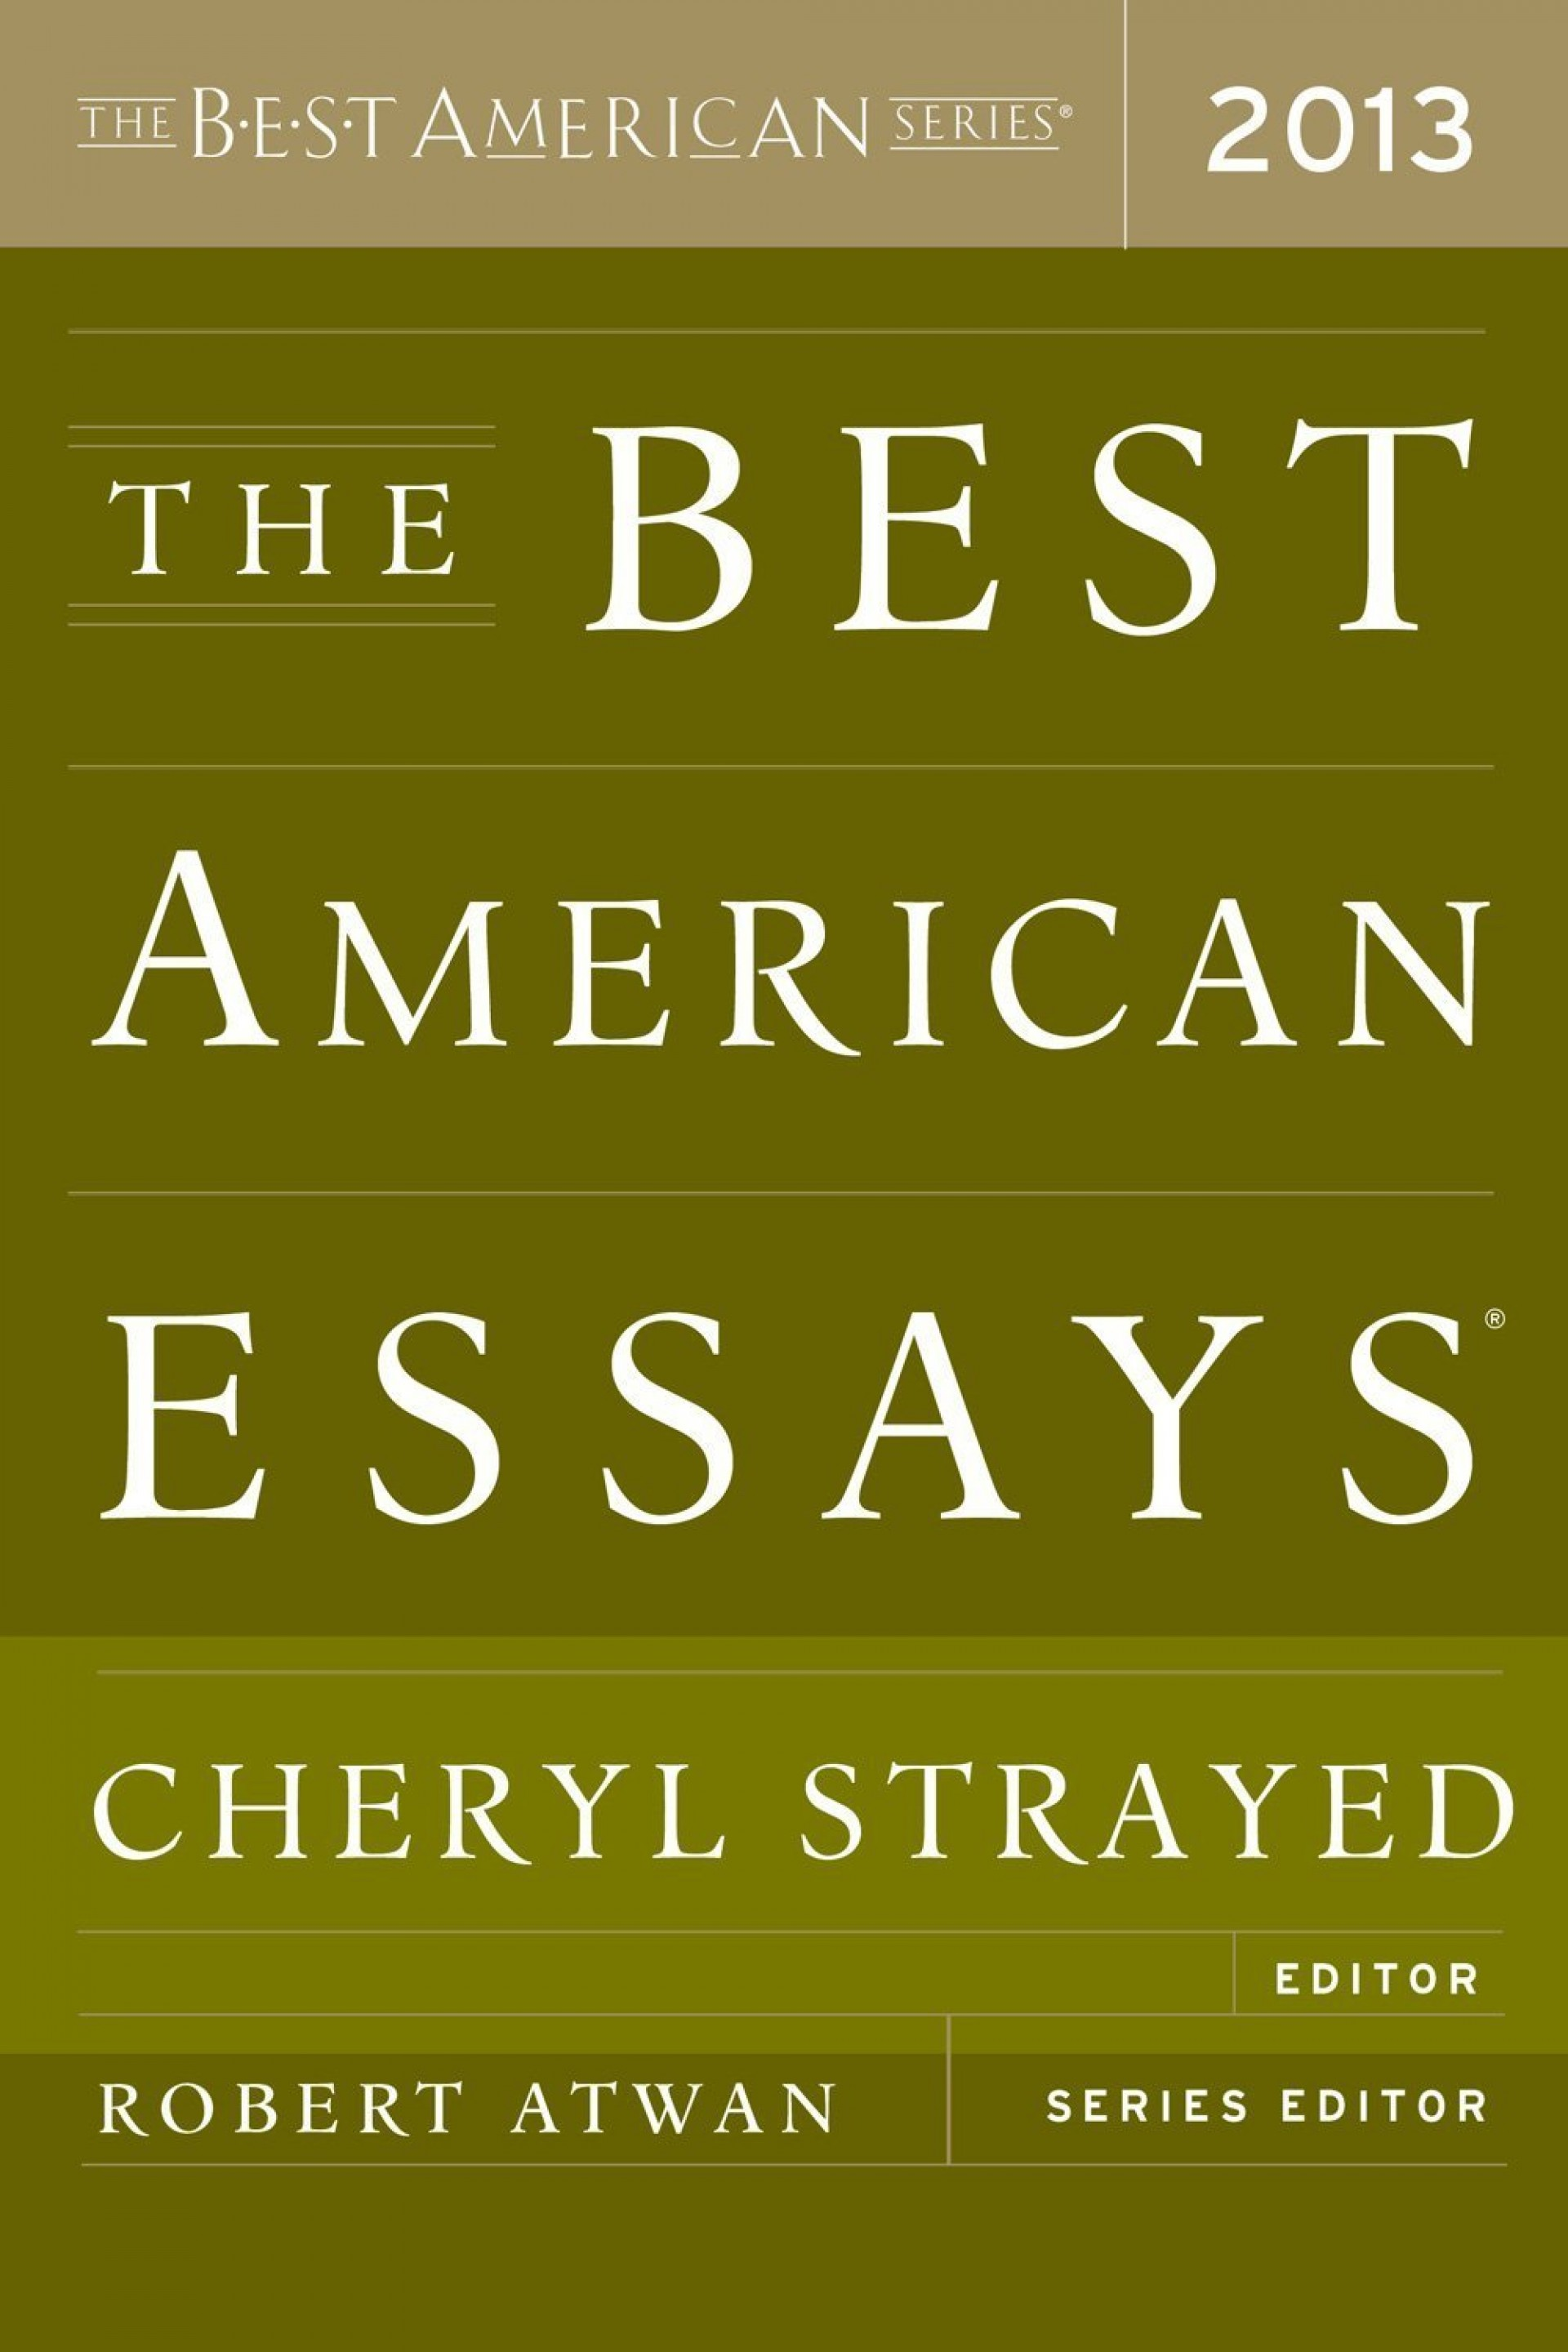 003 Best American Essays Essay Example Striking 2017 Table Of Contents The Century Pdf 1920